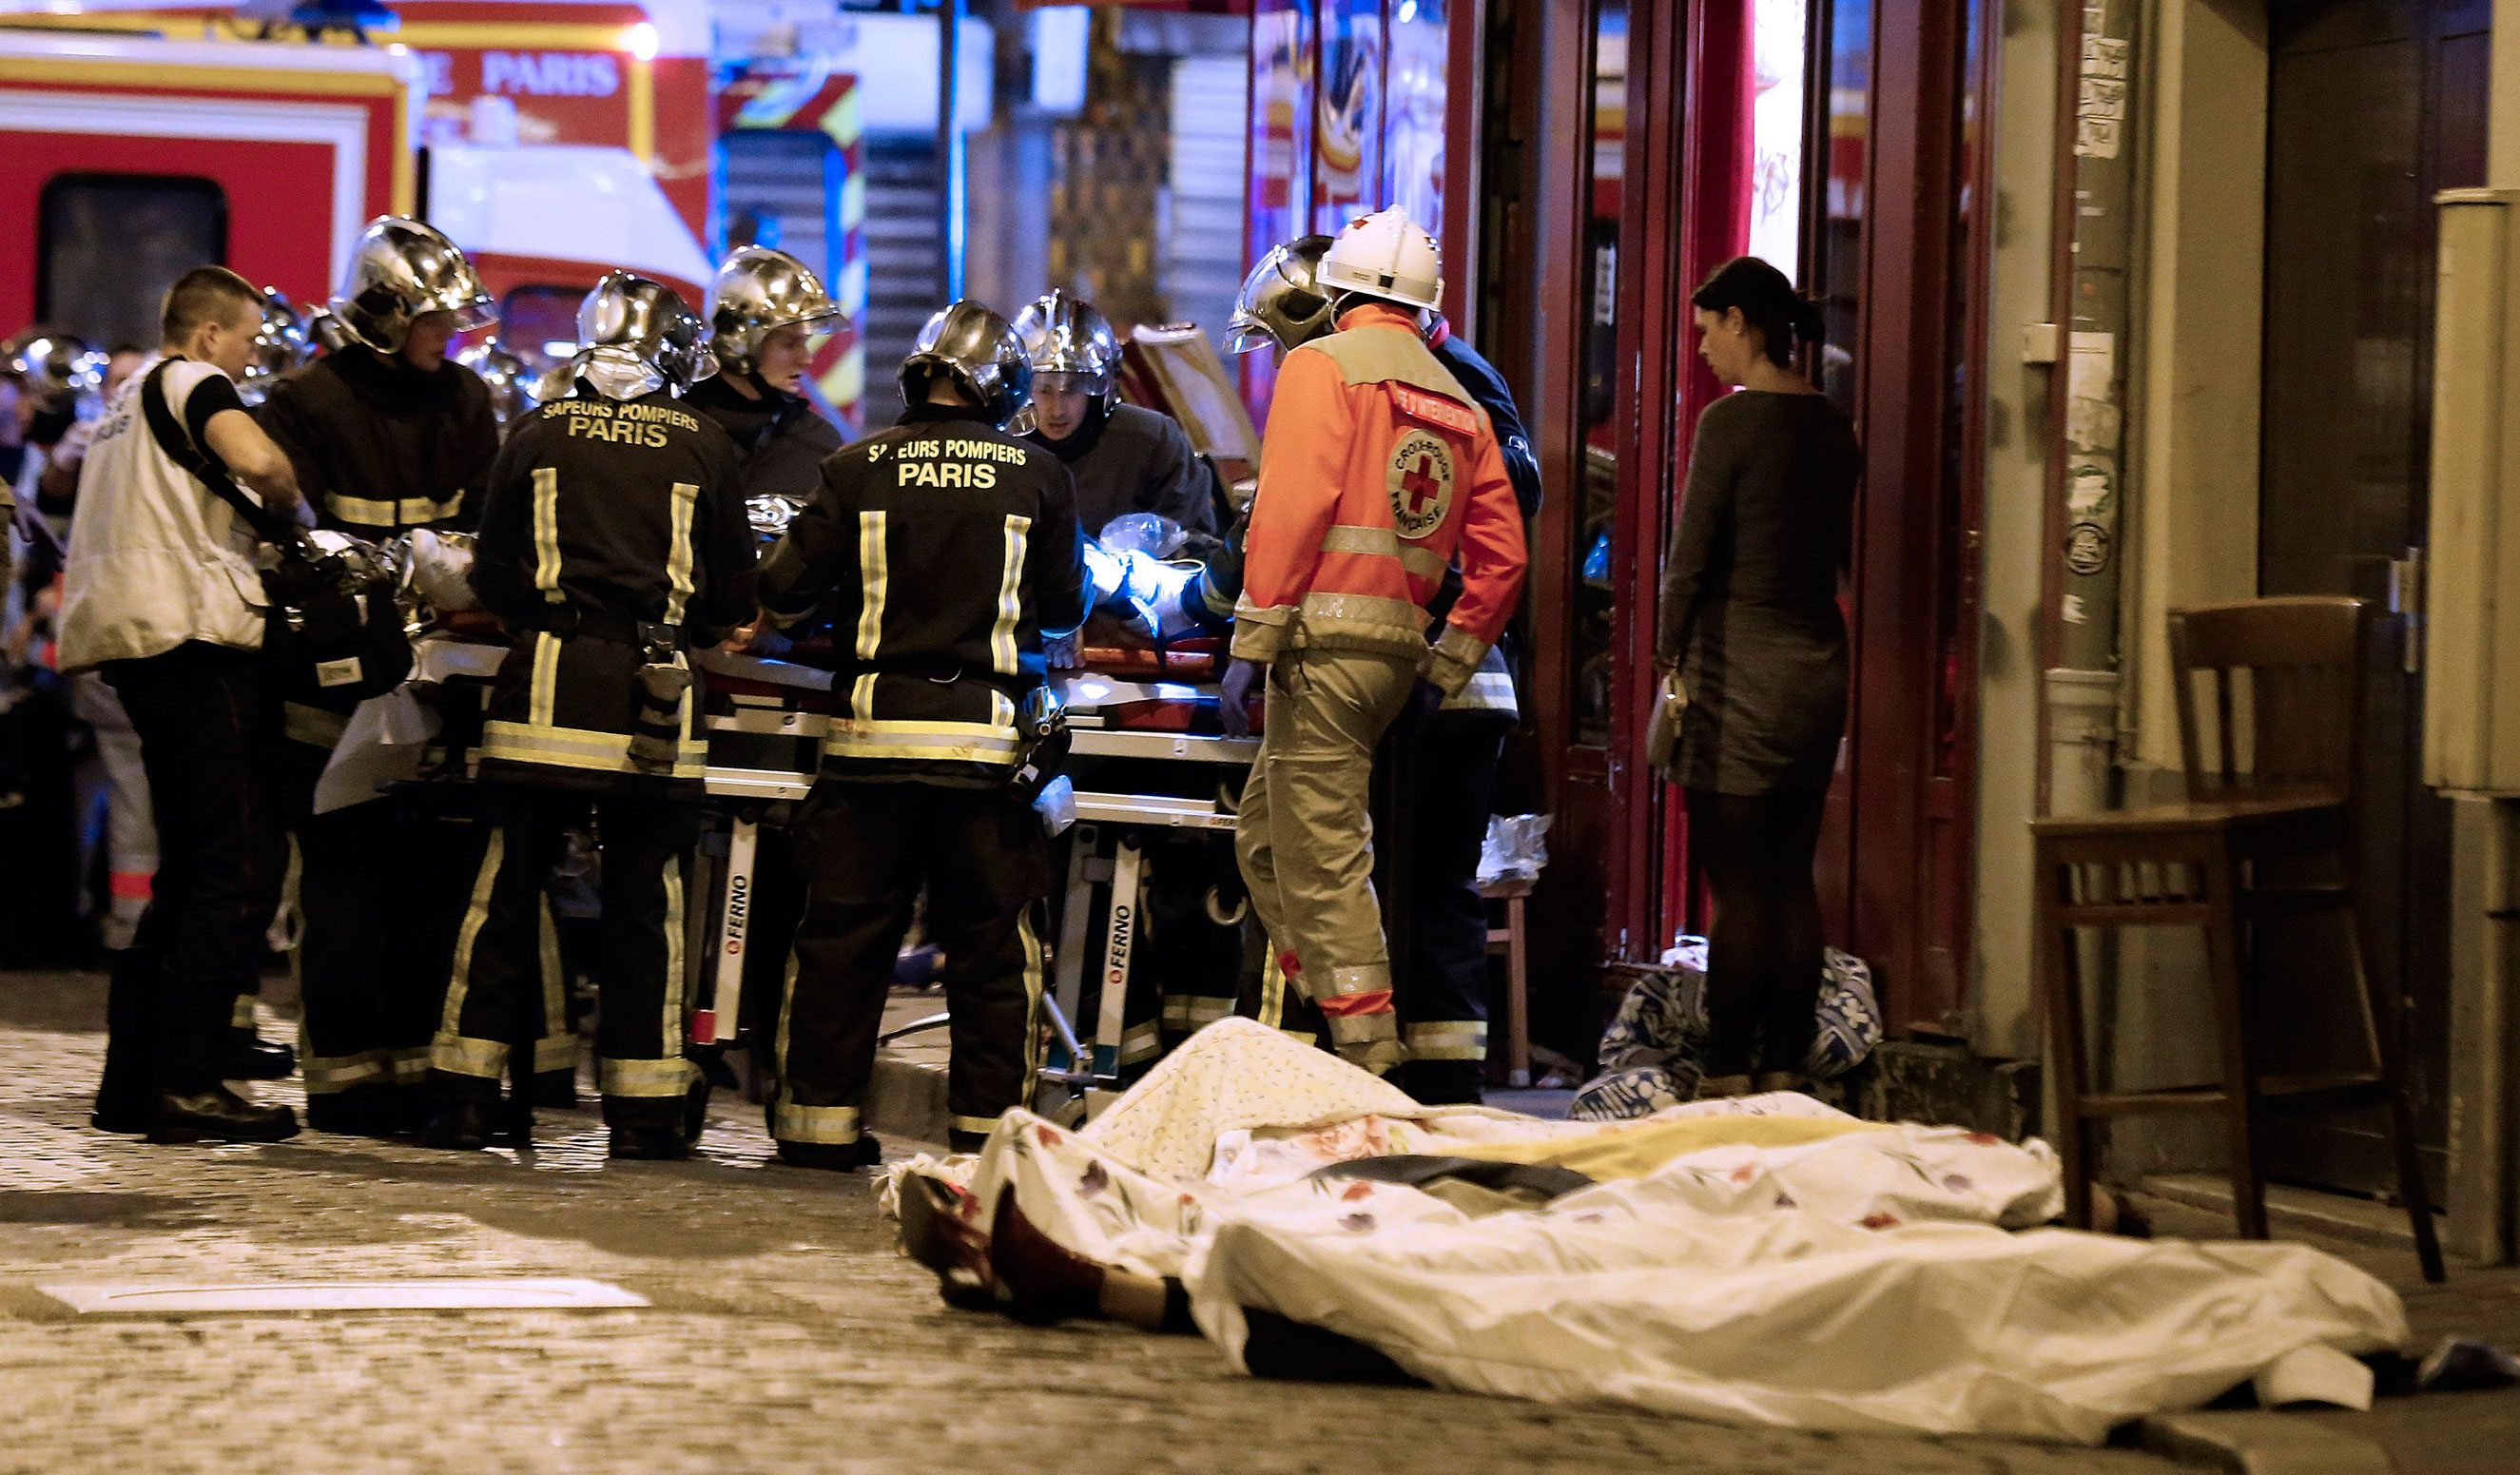 Rescue workers attend to victims of the attacks in the 10th district of Paris on Nov. 13, 2015.